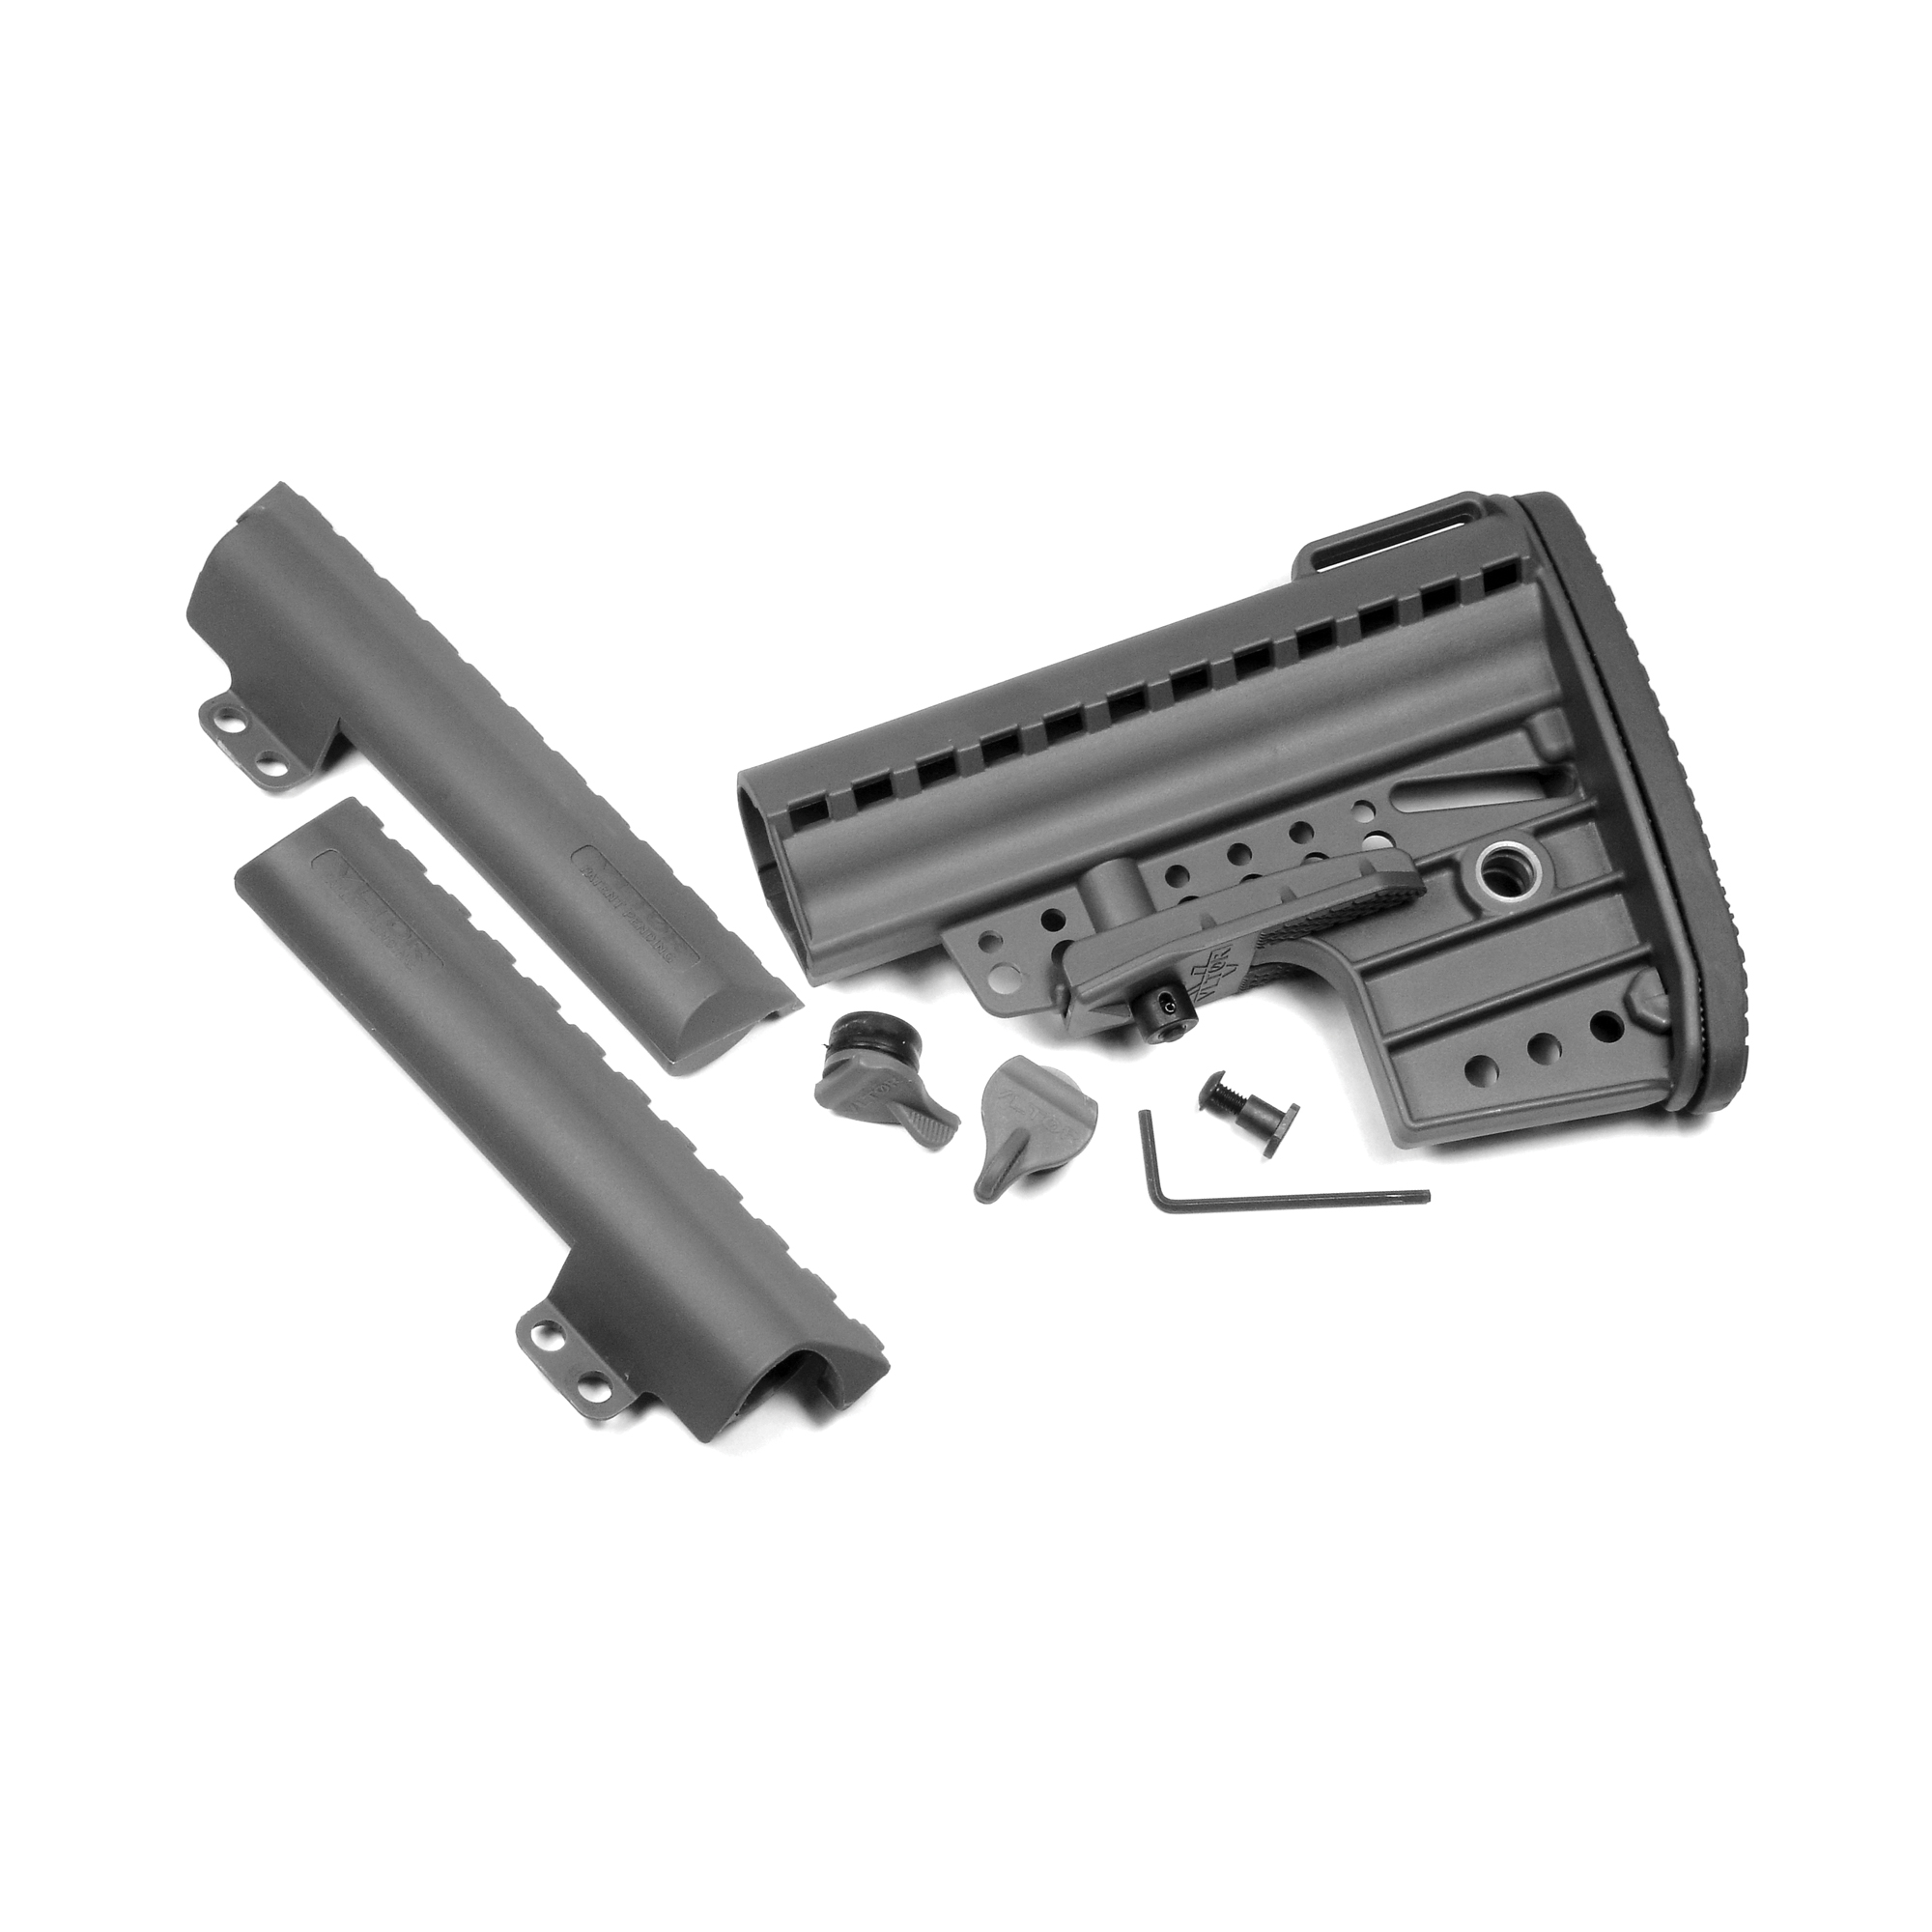 """Designed from lessons taken from the modern battlefield"""" the IMOD stock provides a highly practical and functional design. In addition"""" the stock is constructed from the finest materials"""" making it capable of withstanding the most rugged demands."""